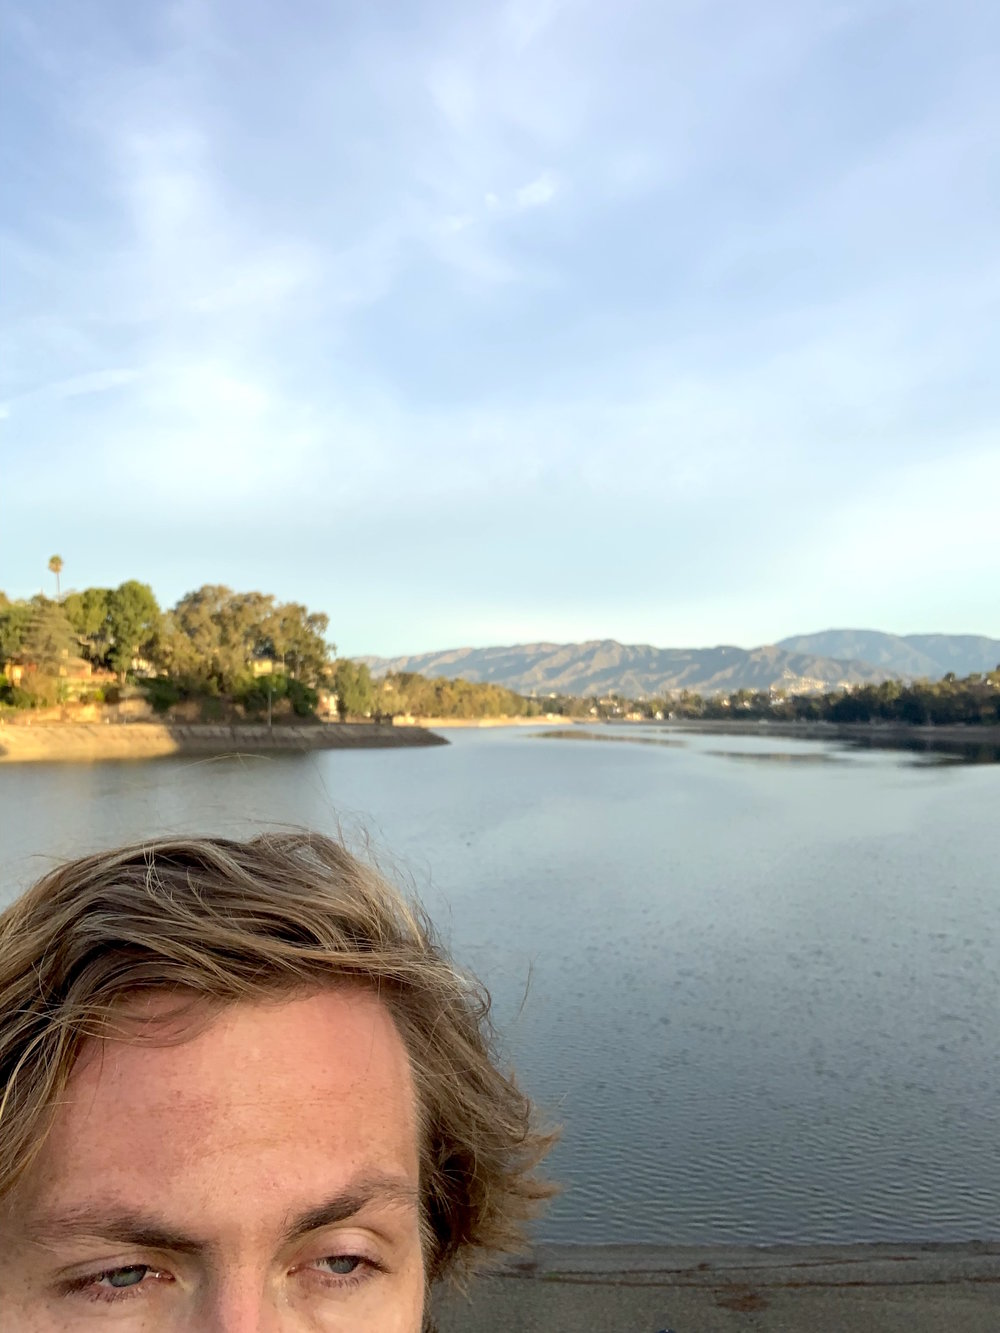 FIRST LAKE RUN SELFIE OF 2019.